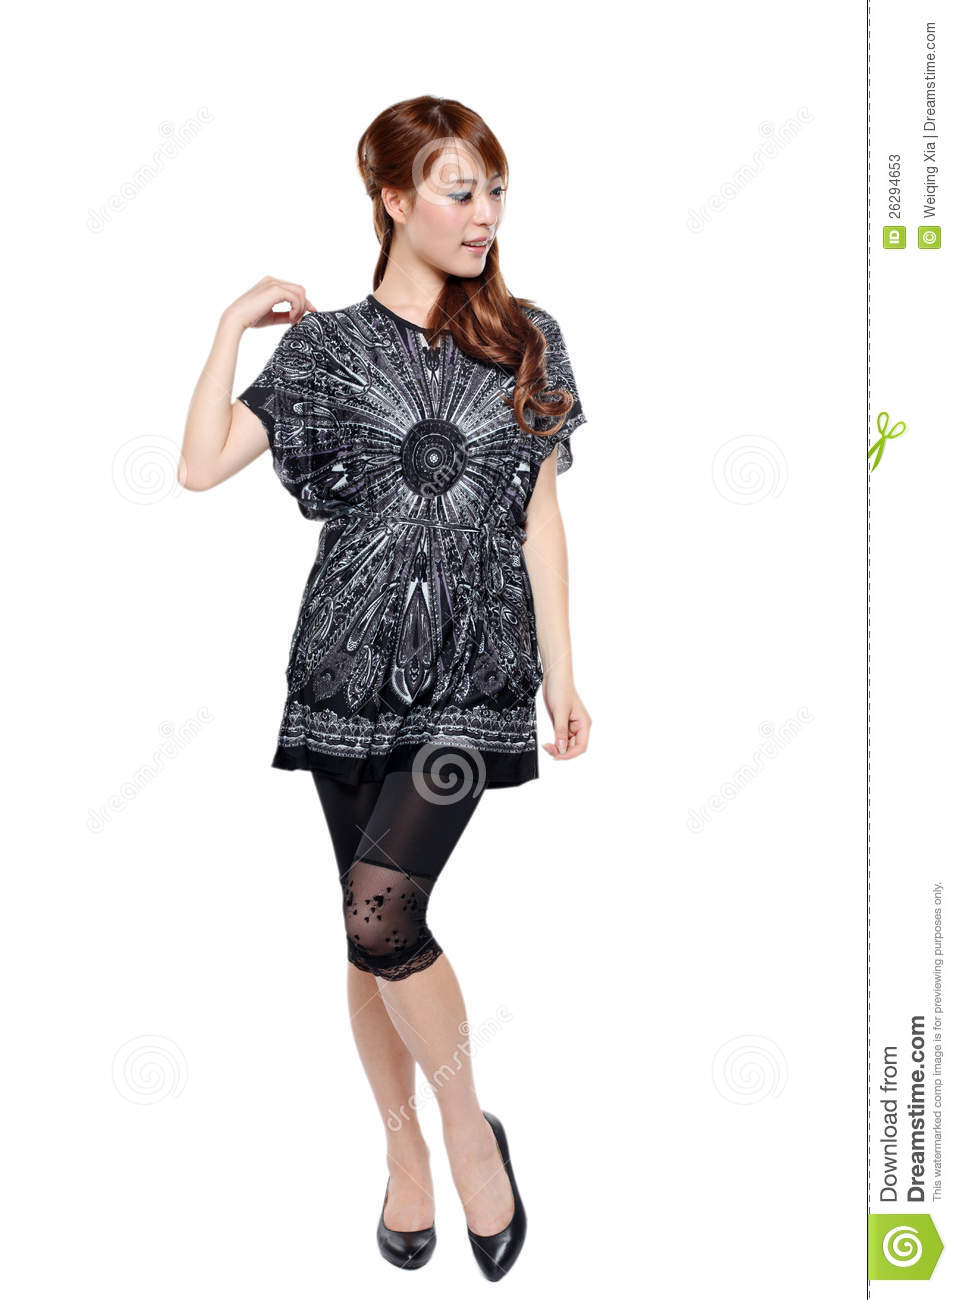 Fashion Model Pose Stock Photos Image 26294653